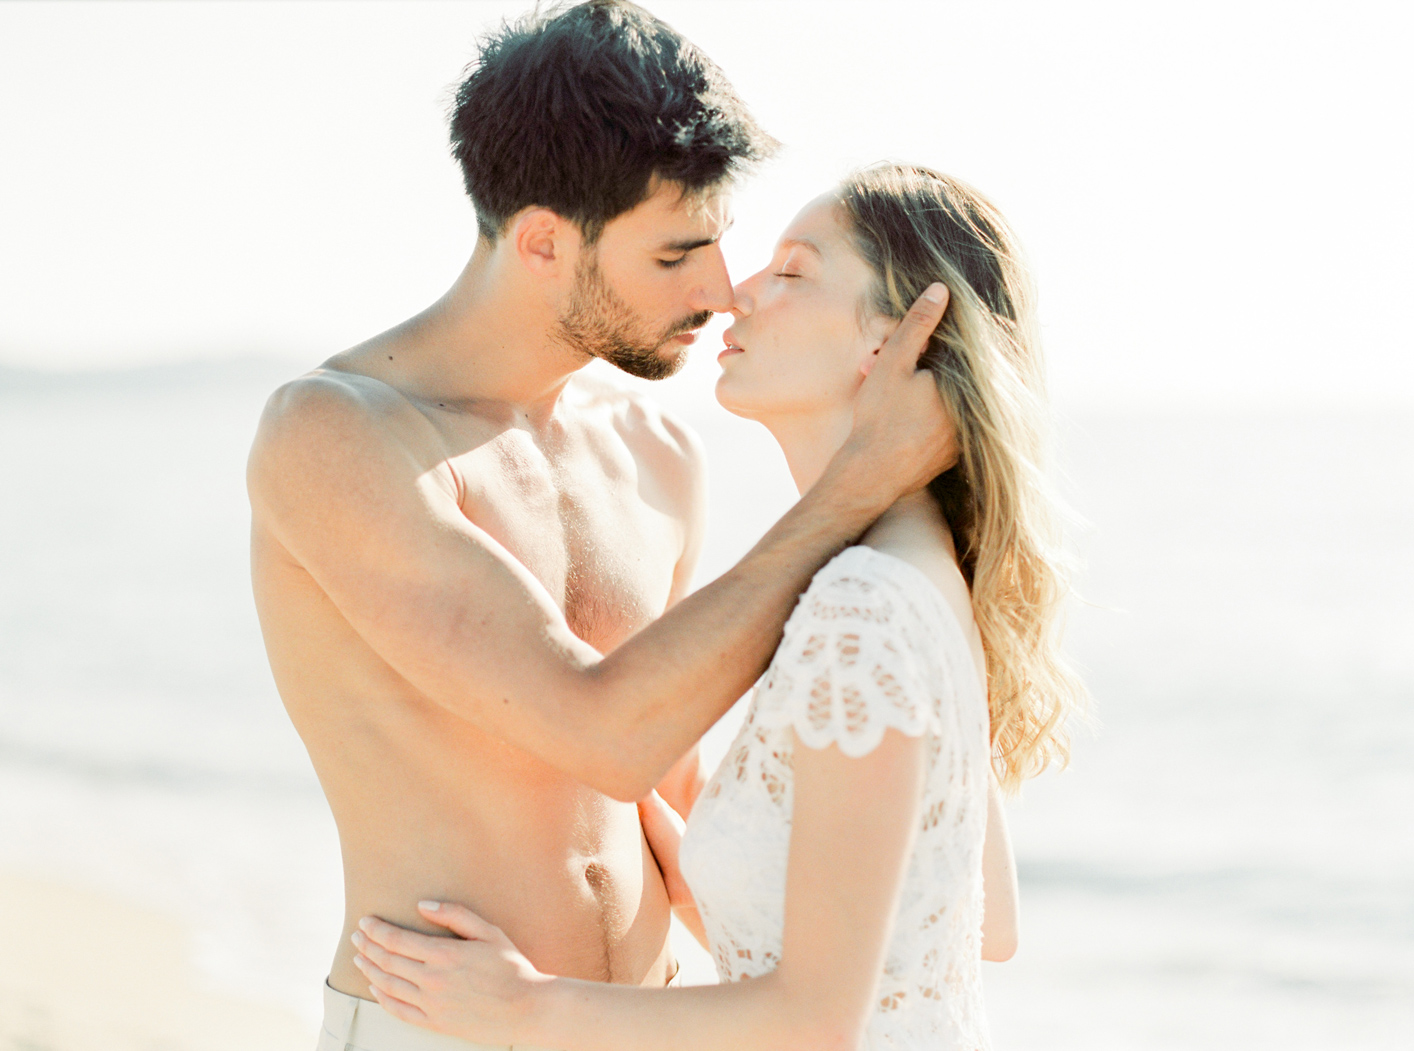 Saint Tropez Honeymoon Photo Session by Ashley Ludaescher Photography (19)